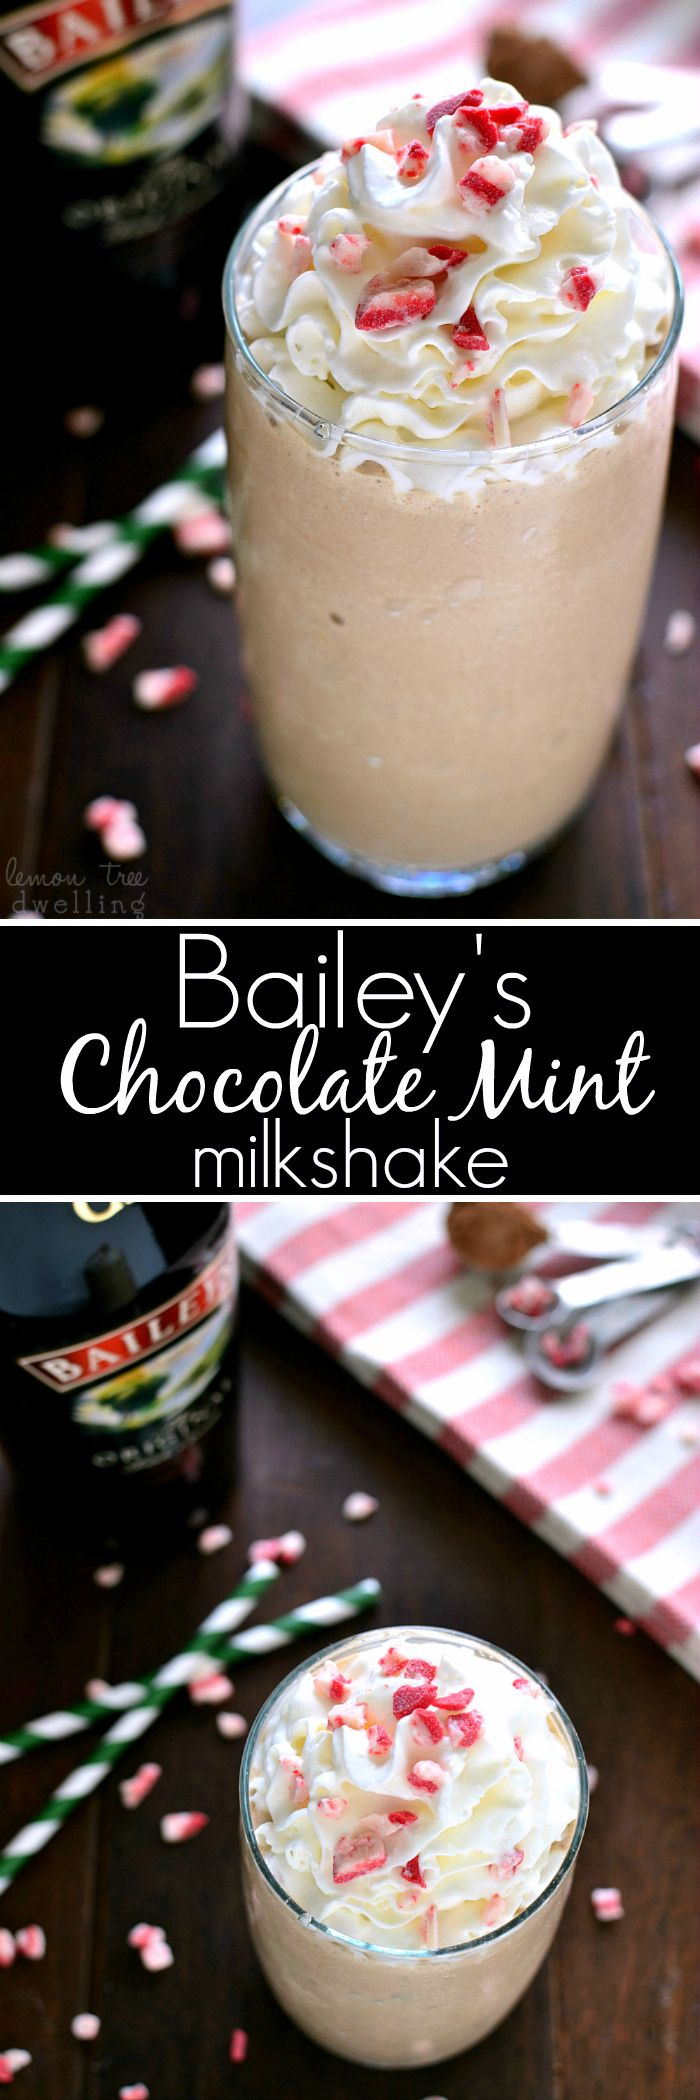 This Bailey's Chocolate Mint Milkshake is everything you could want in a milkshake...and perfect for the holidays!